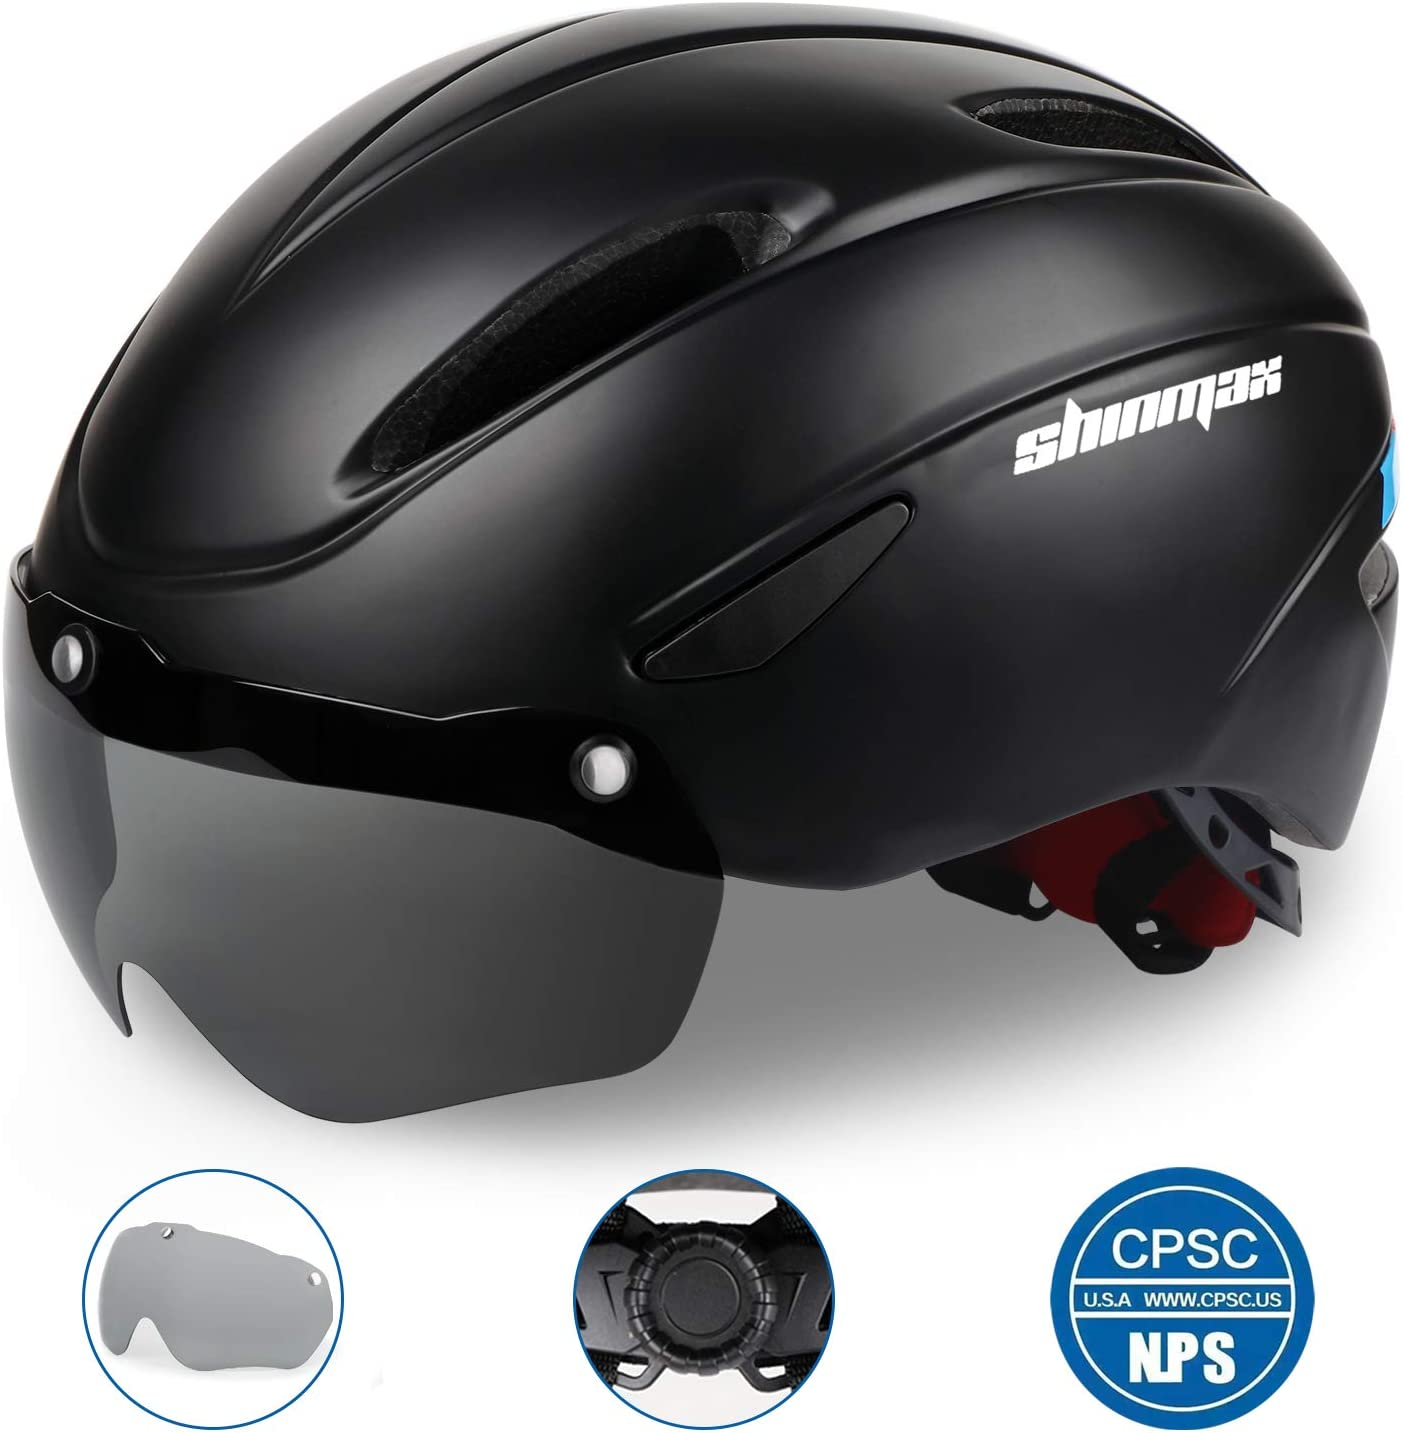 Shinmax Bike Helmet, Bicycle Helmet Men Women CPSC Safety Standard with Detachable Magnetic Goggles Adjustable for Adult Road Biking Mountain Cycling Helmet BC-001 Bonus with Carrying Bag